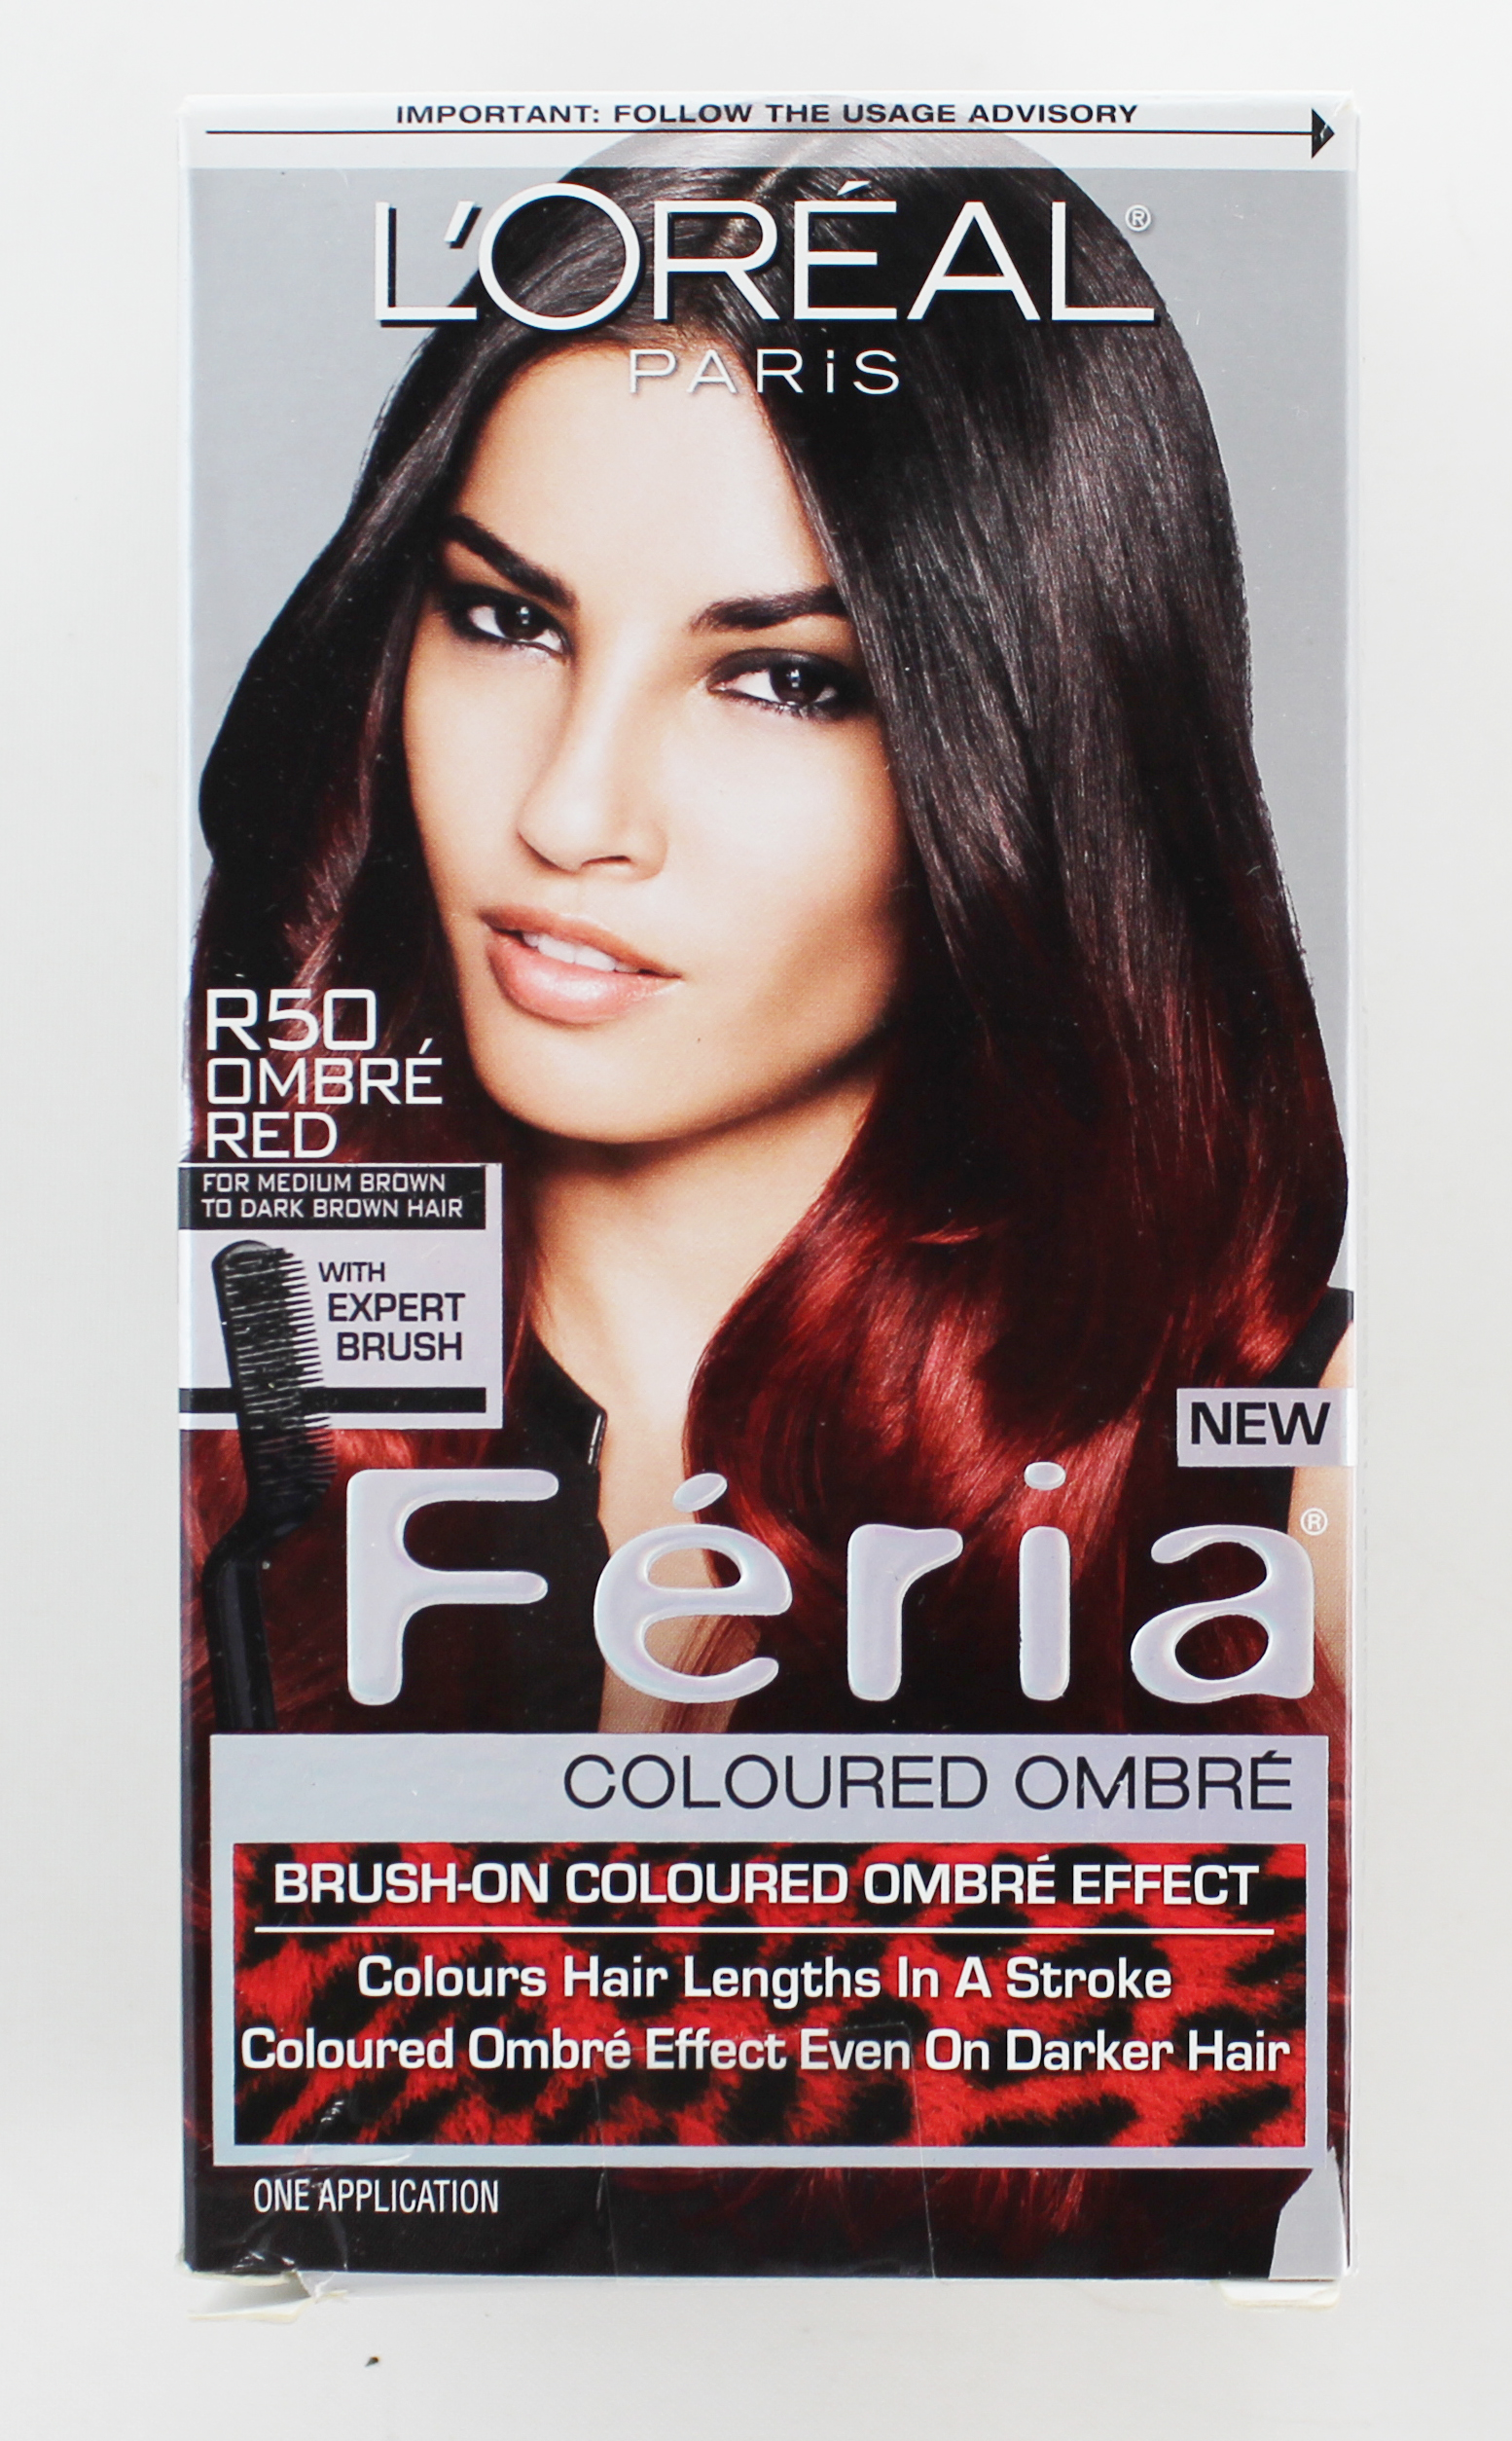 Loreal Feria Brush-on Ombre Effect Hair Color, R50 Ombre Red